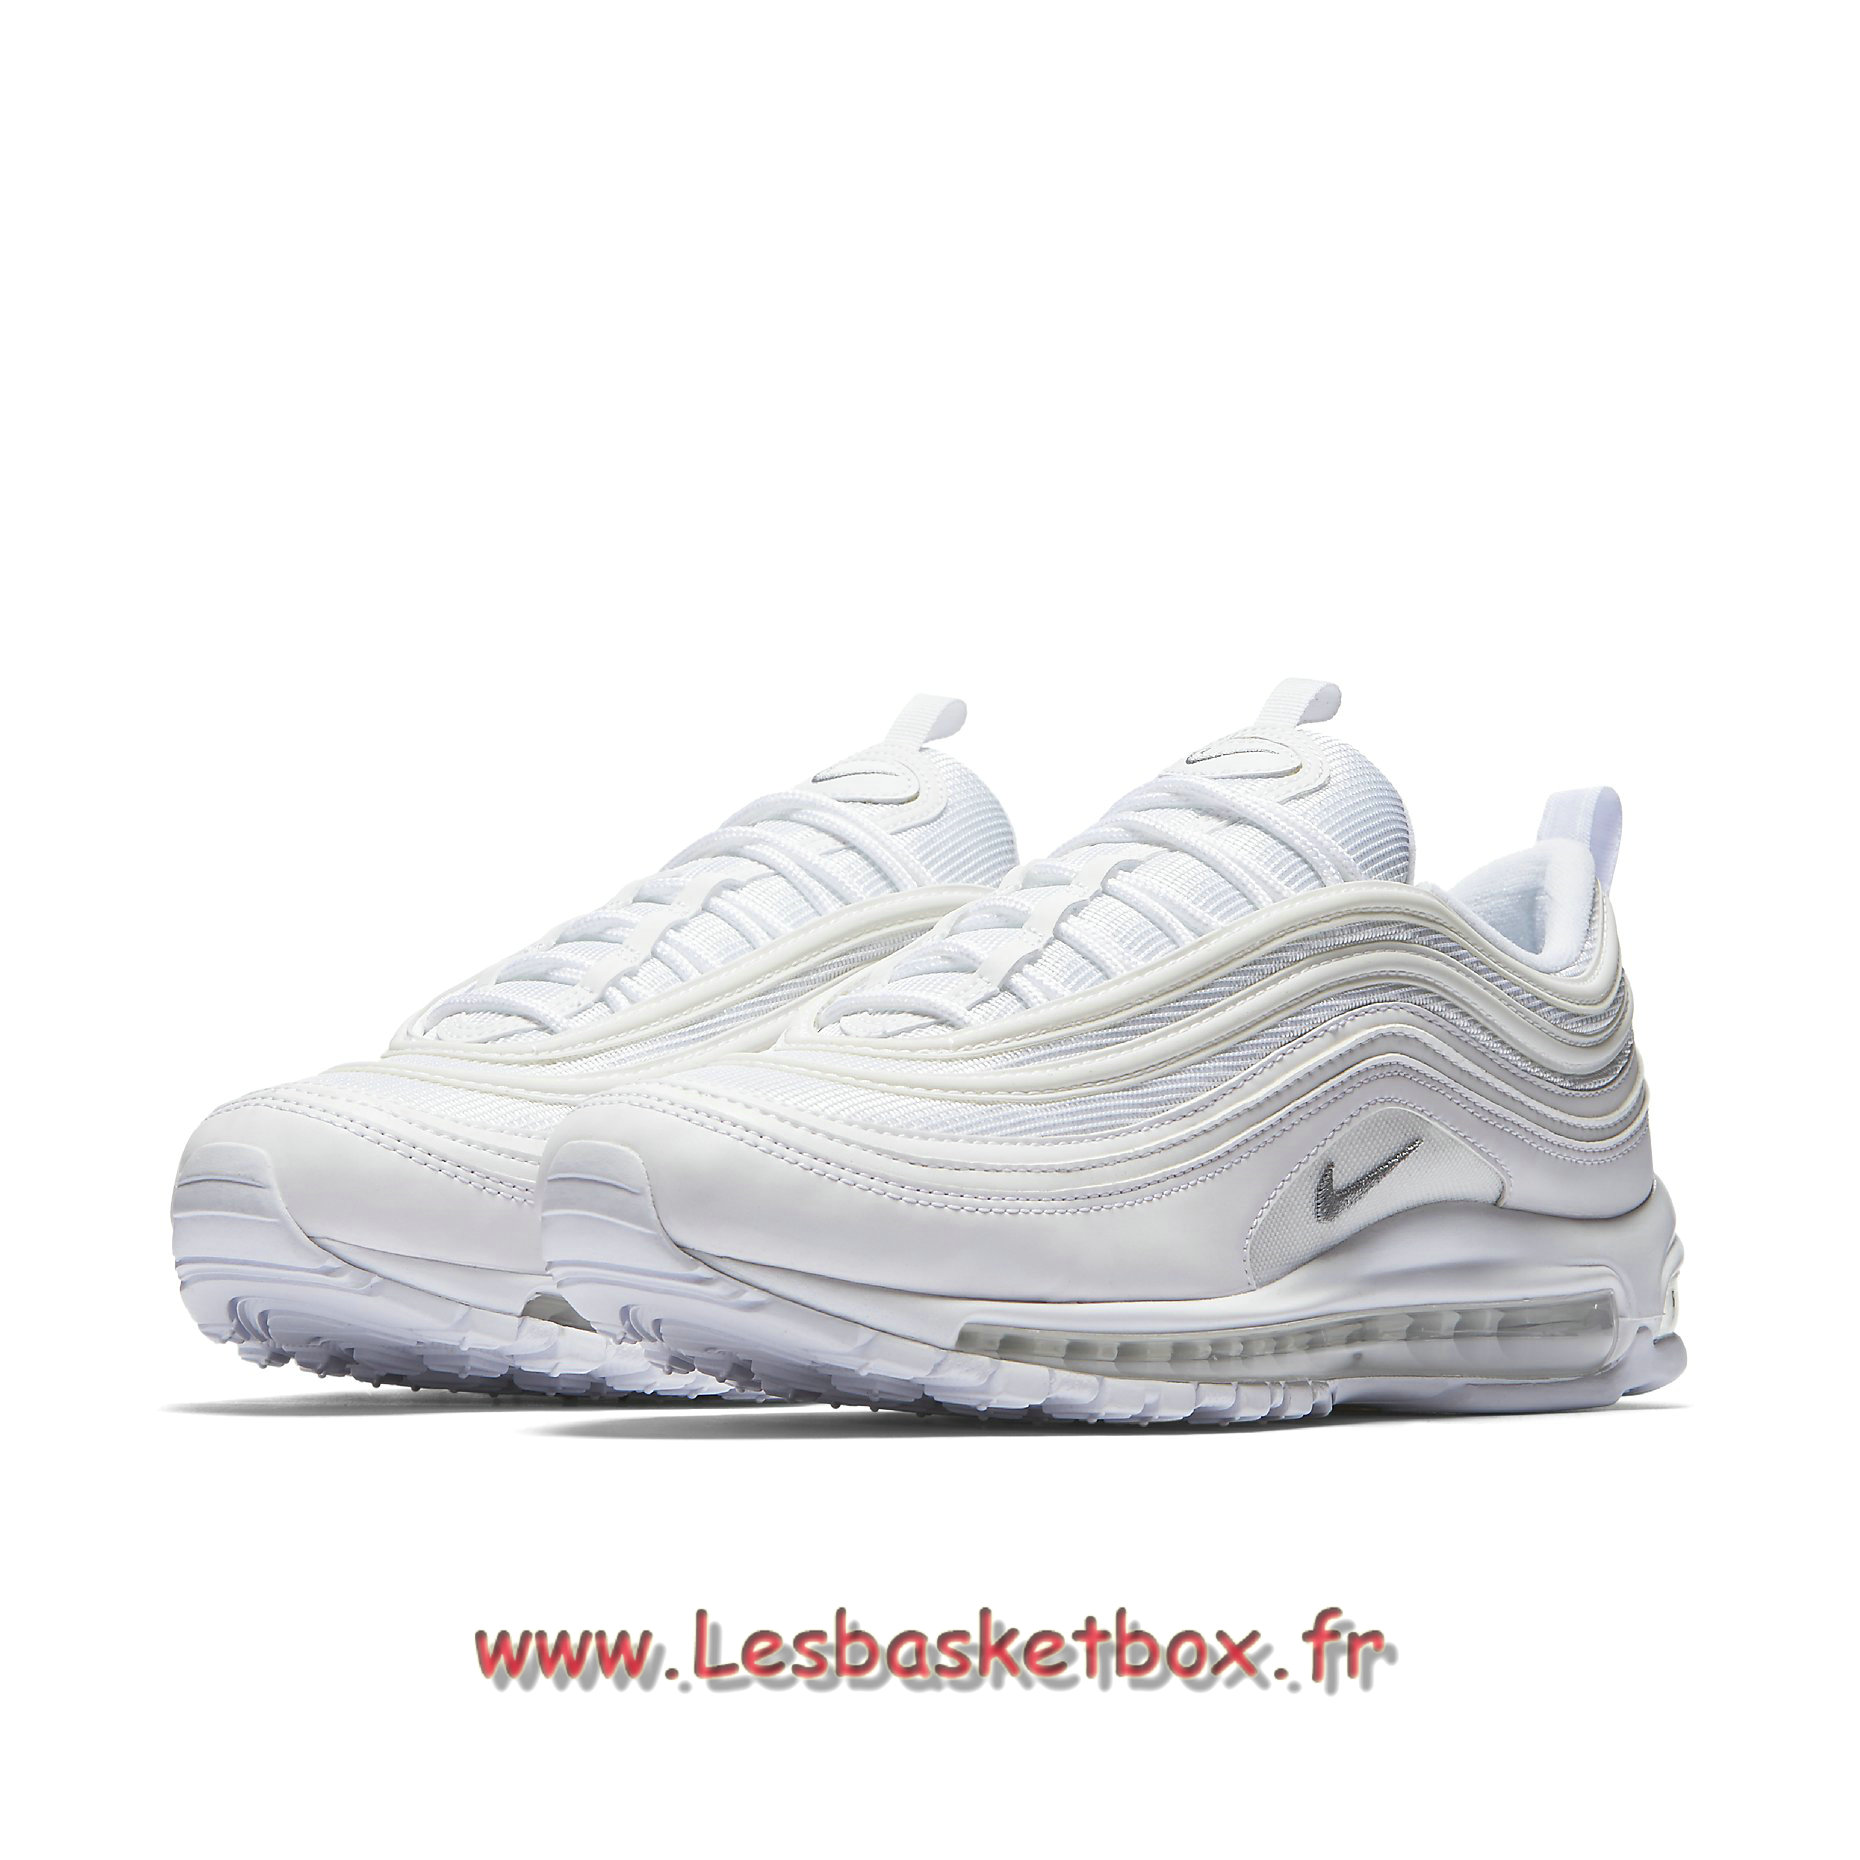 sale retailer 324bd d9f06 ... Nike Air Max 97 Triple White 921826 101 Chaussures nike basket homme ...